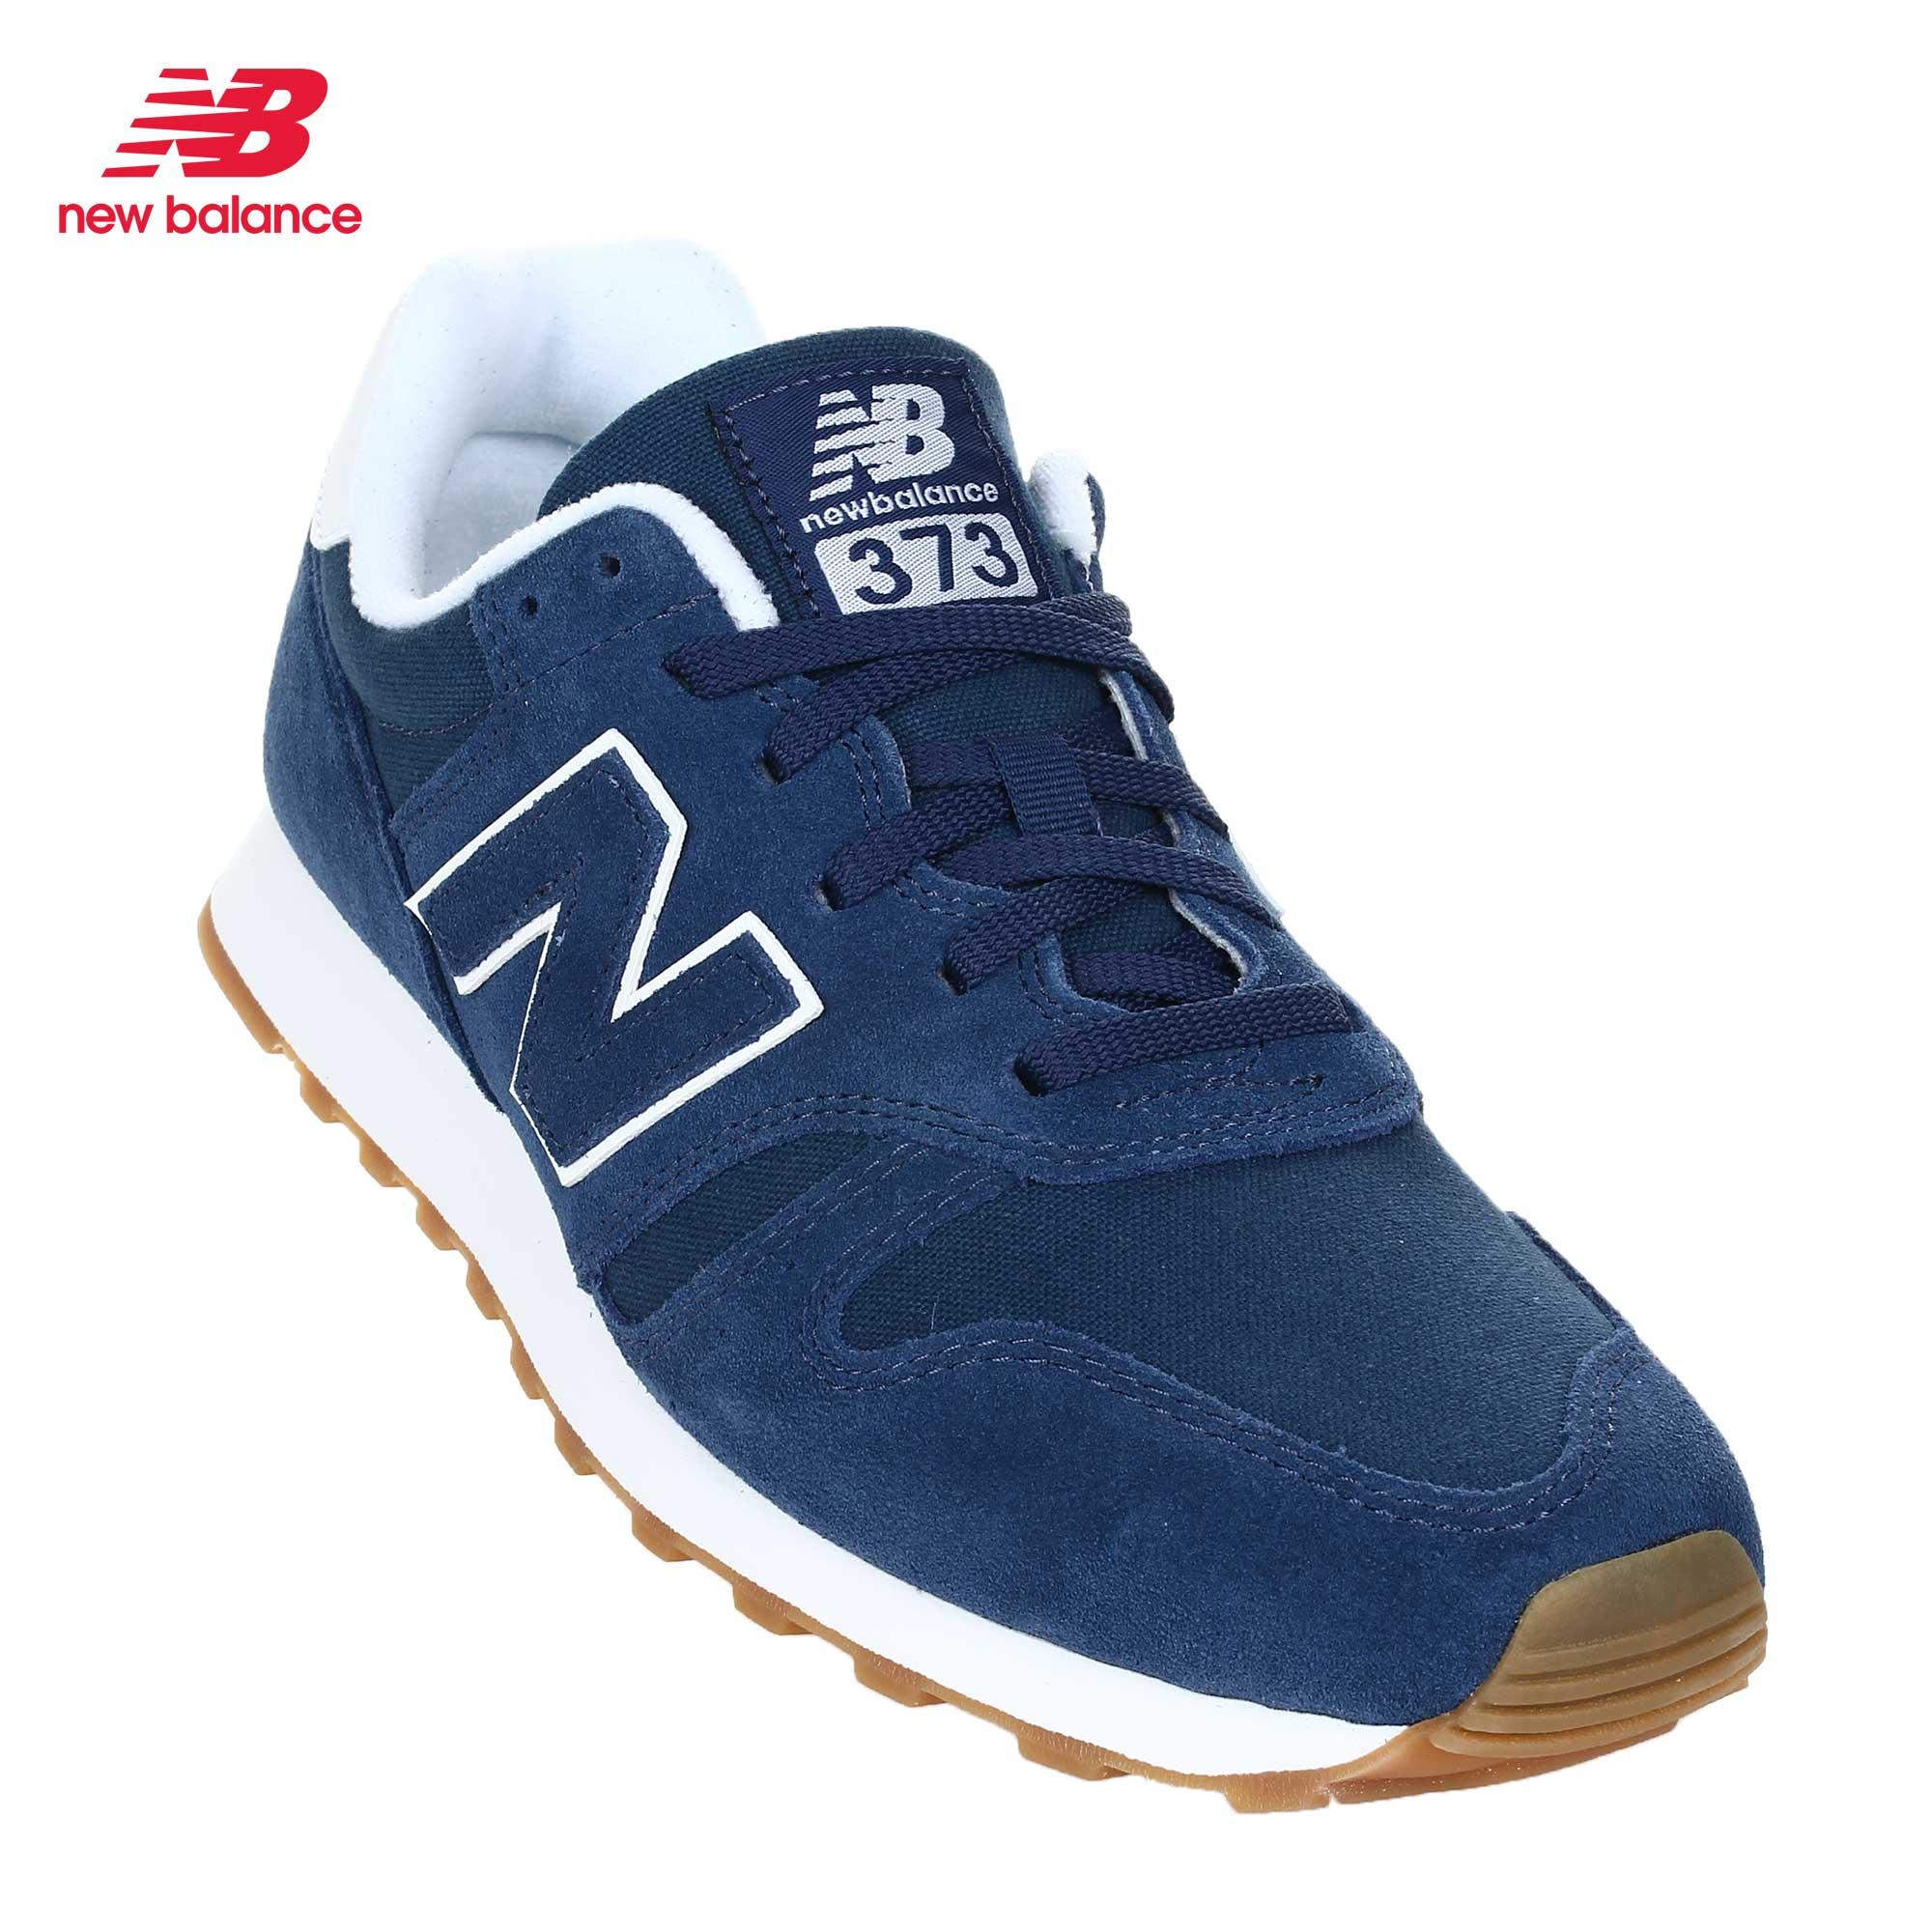 fb599fbaf7 New Balance Philippines -New Balance Shoes for Men for sale - prices ...